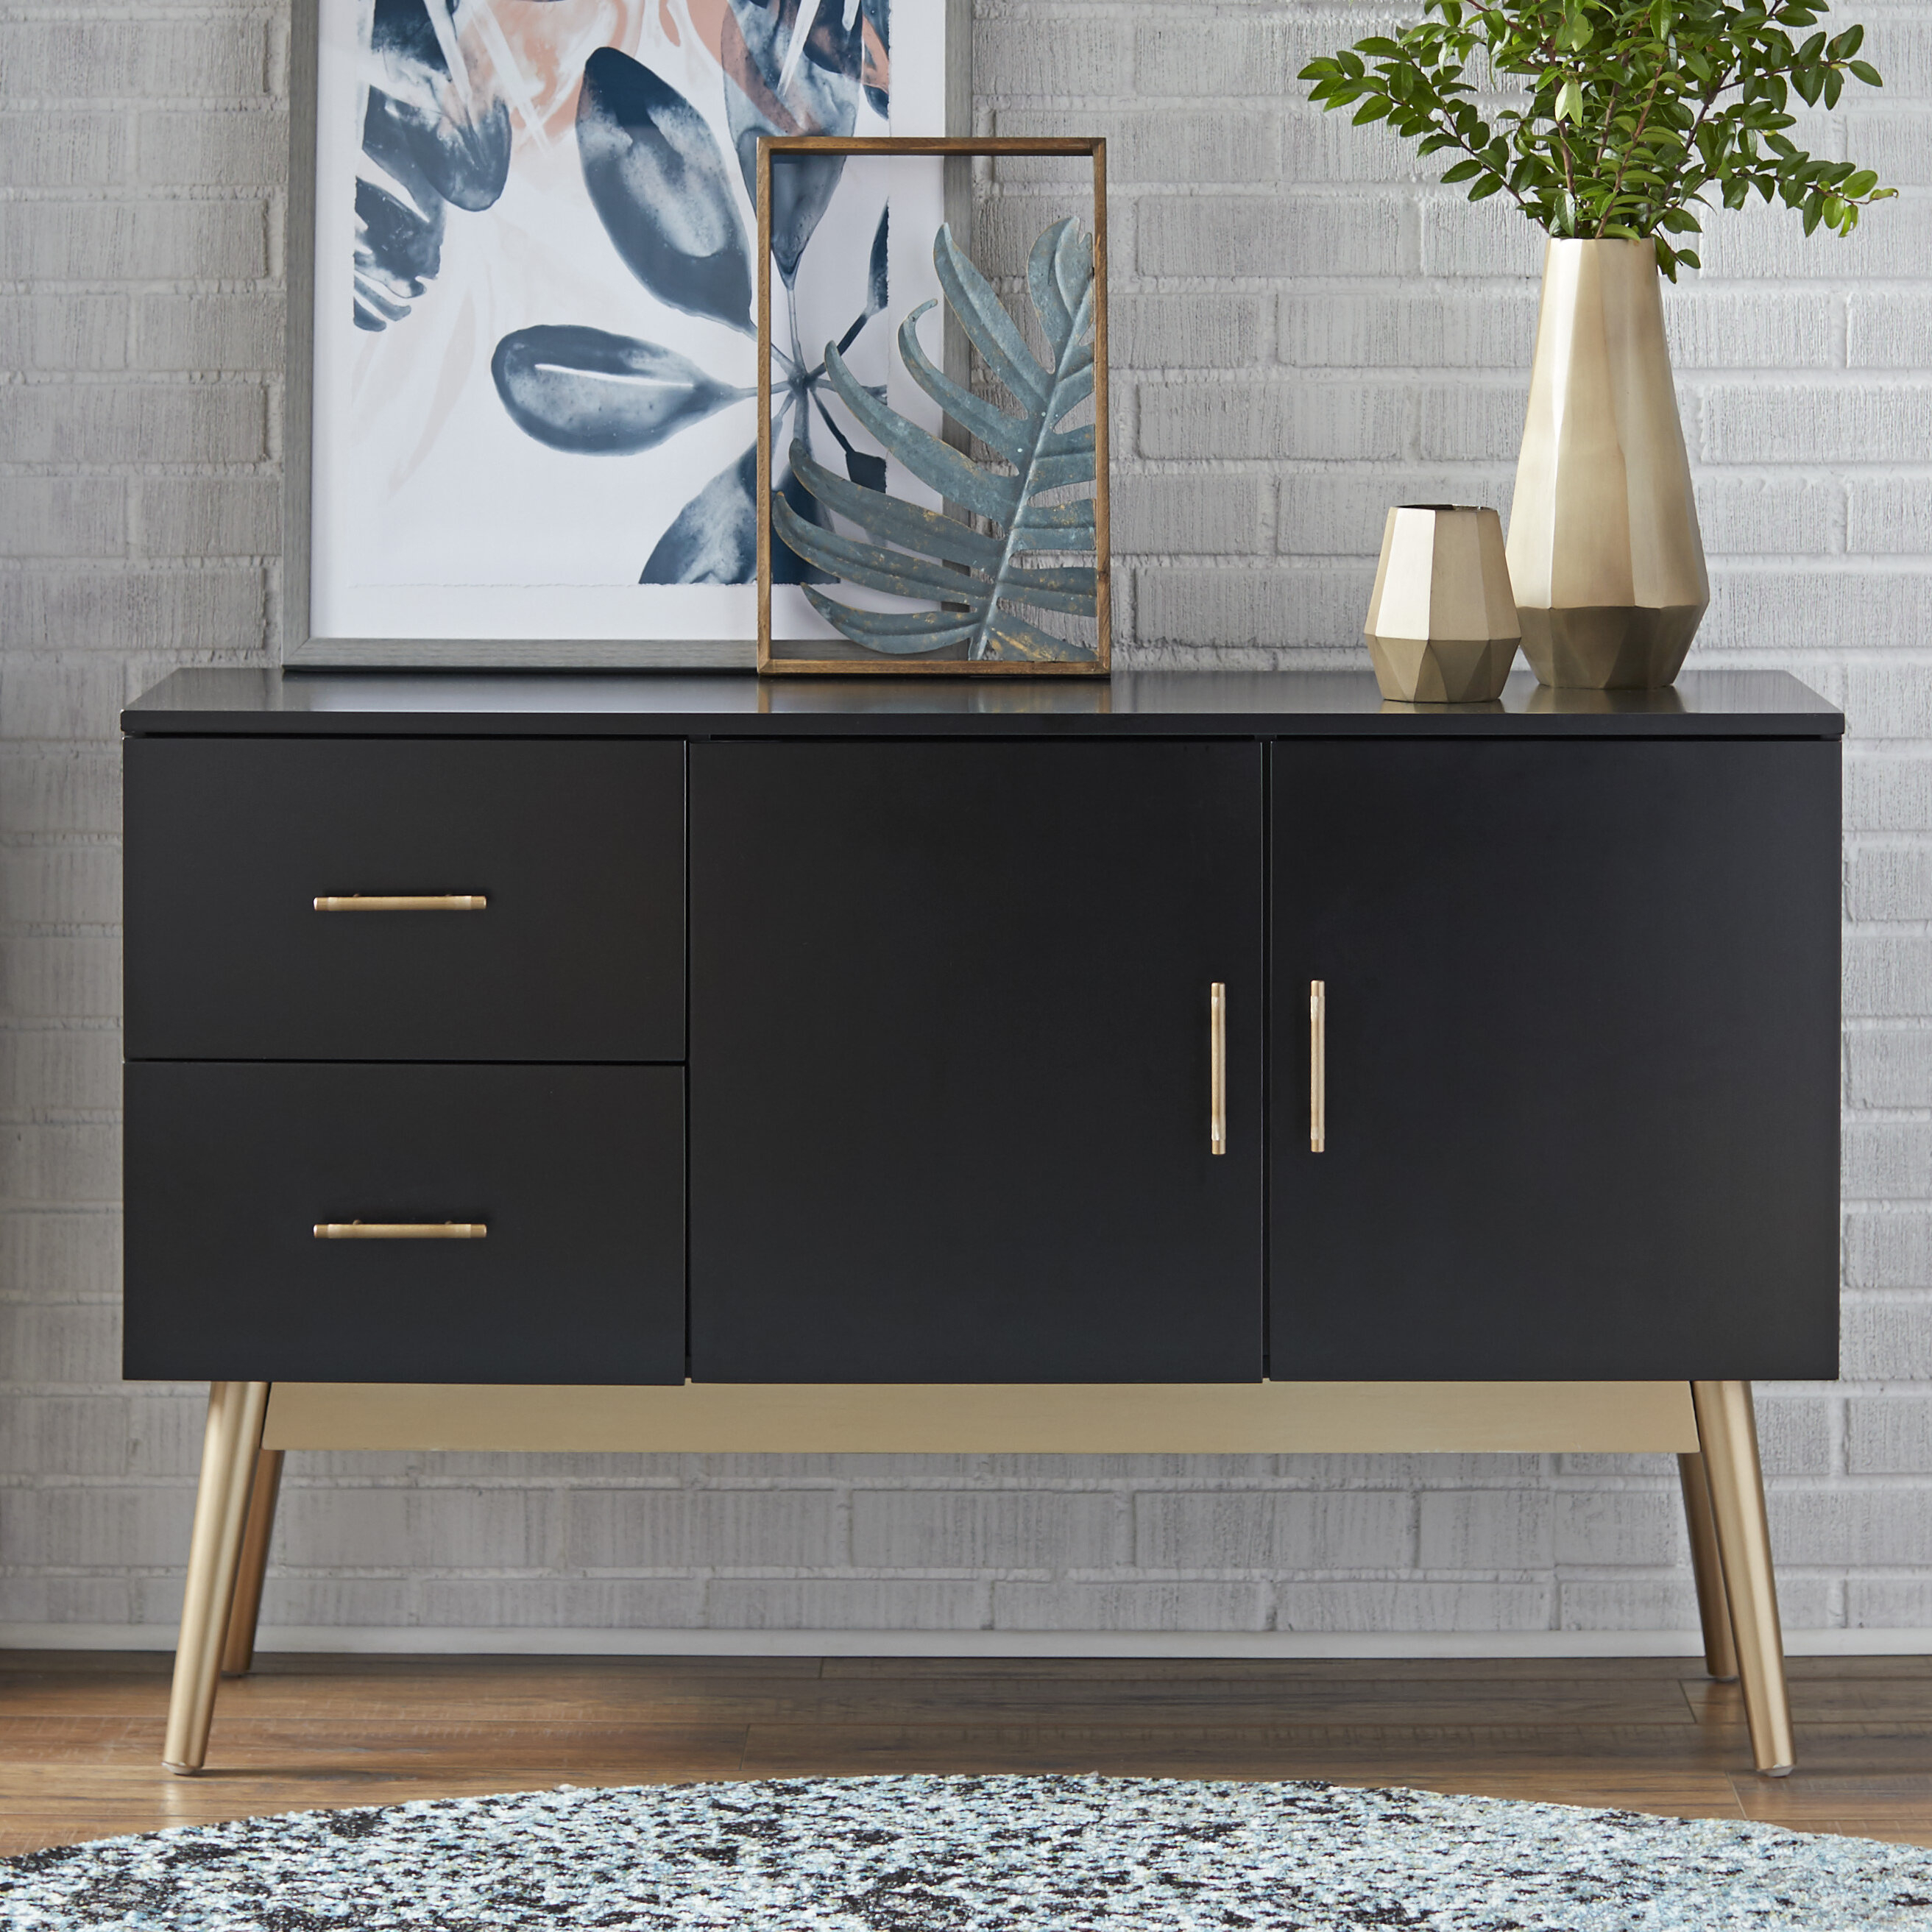 Inspiration about Modern & Contemporary High Gloss Black Sideboard | Allmodern Inside Most Up To Date Armelle Sideboards (#11 of 20)